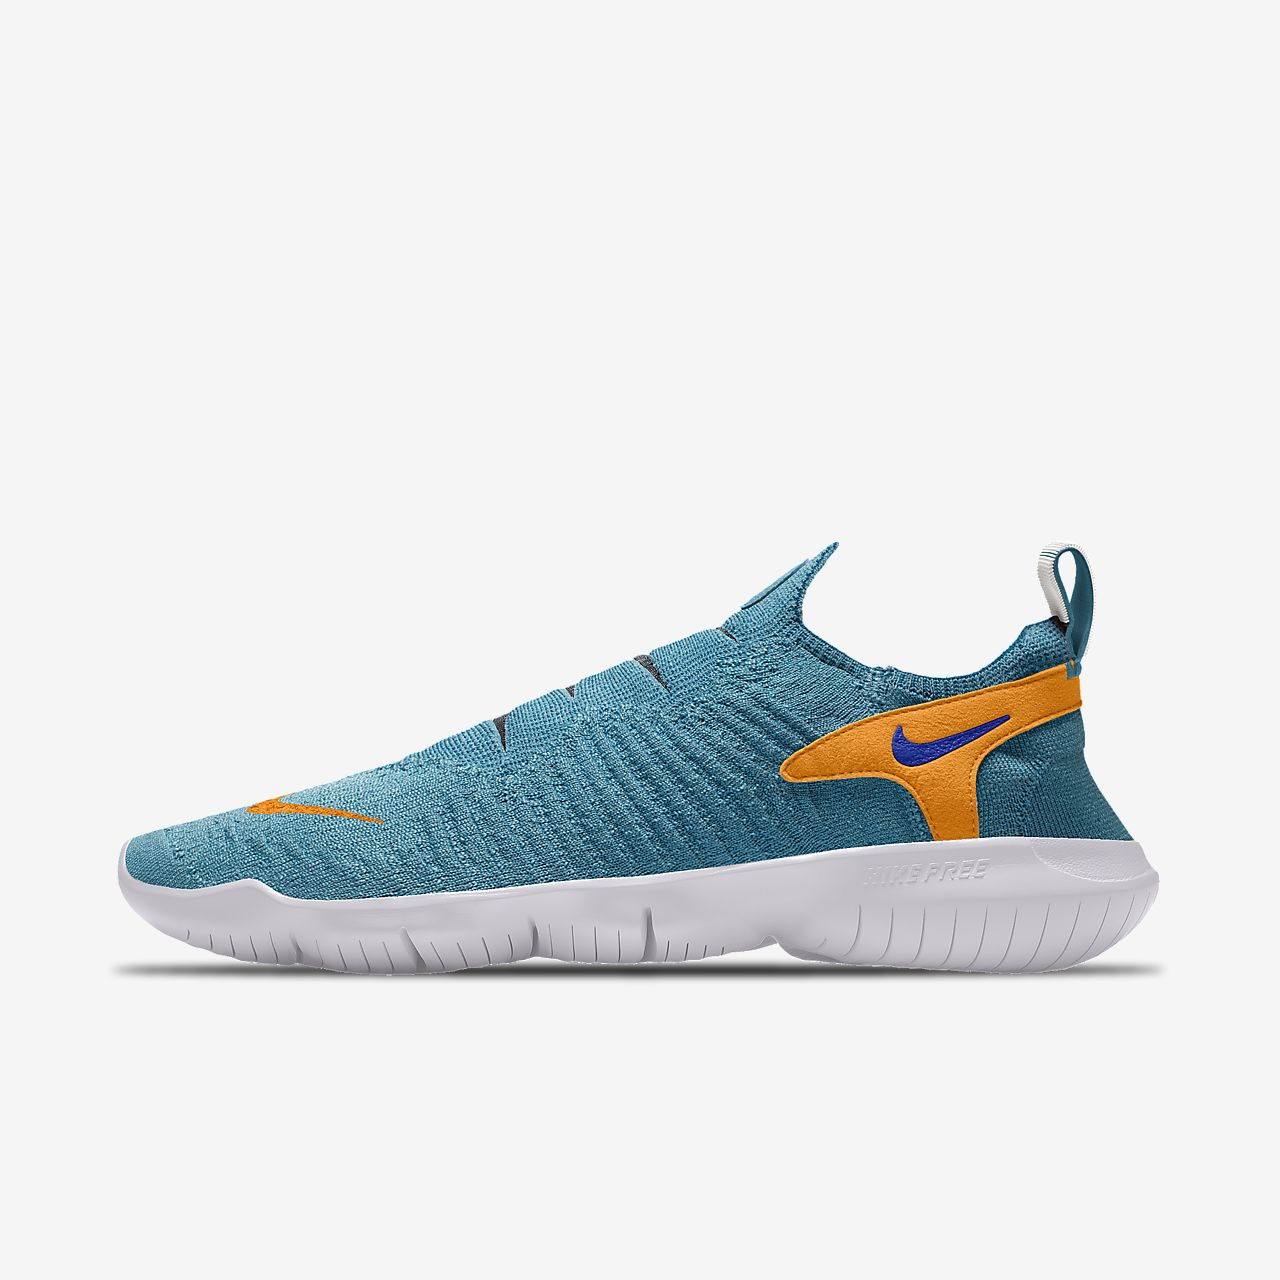 Chaussure de running personnalisable Nike Free RN Flyknit 3.0 By You pour Homme